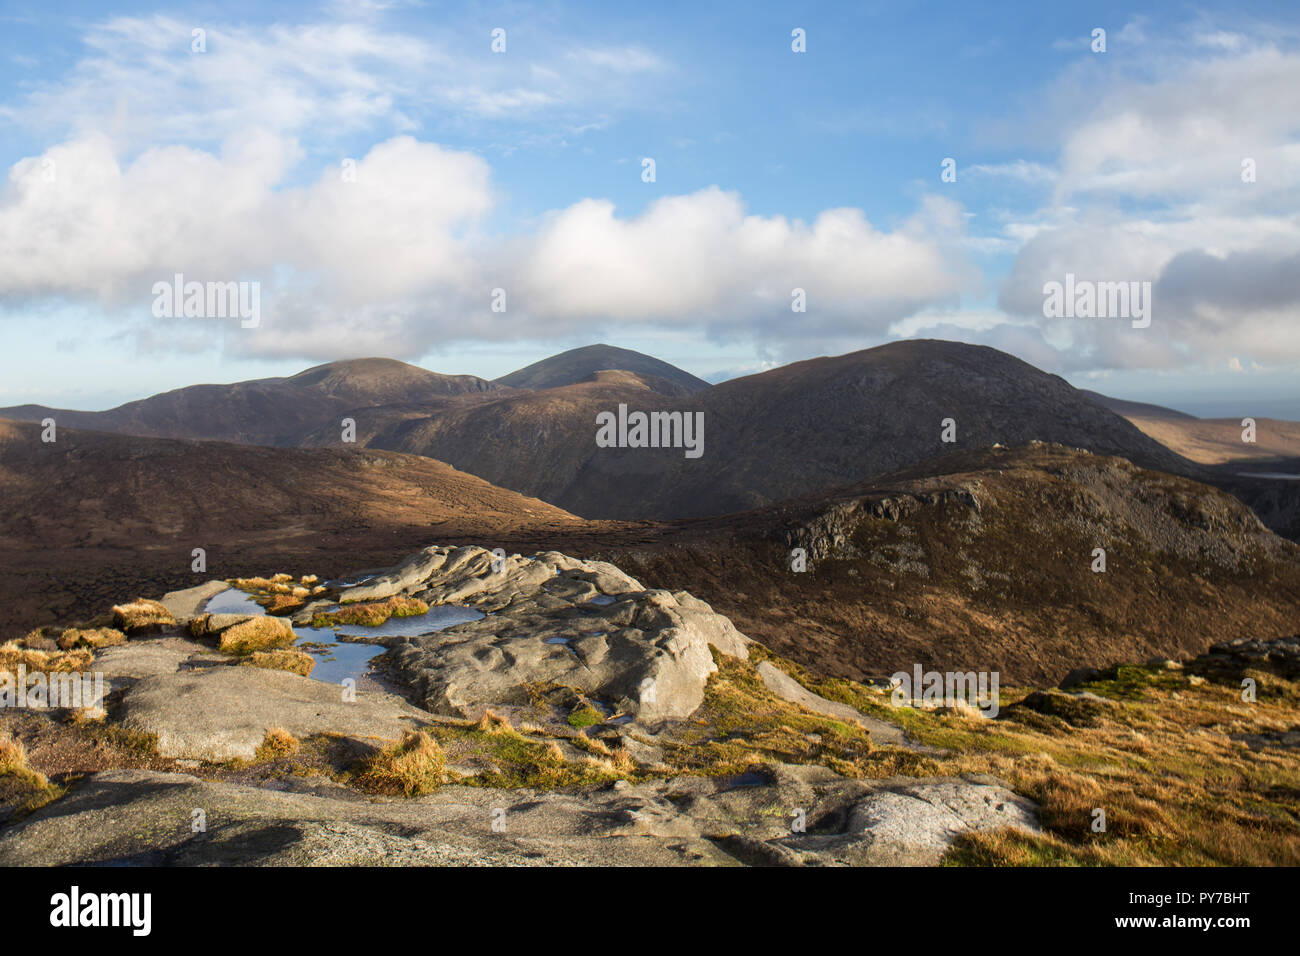 View from the summit of Doan Mountain. Ben Crom mountain on right, Slieve Lamagan behind and Slieve Donard in distance. Mourne Mountains, N.Ireland. - Stock Image